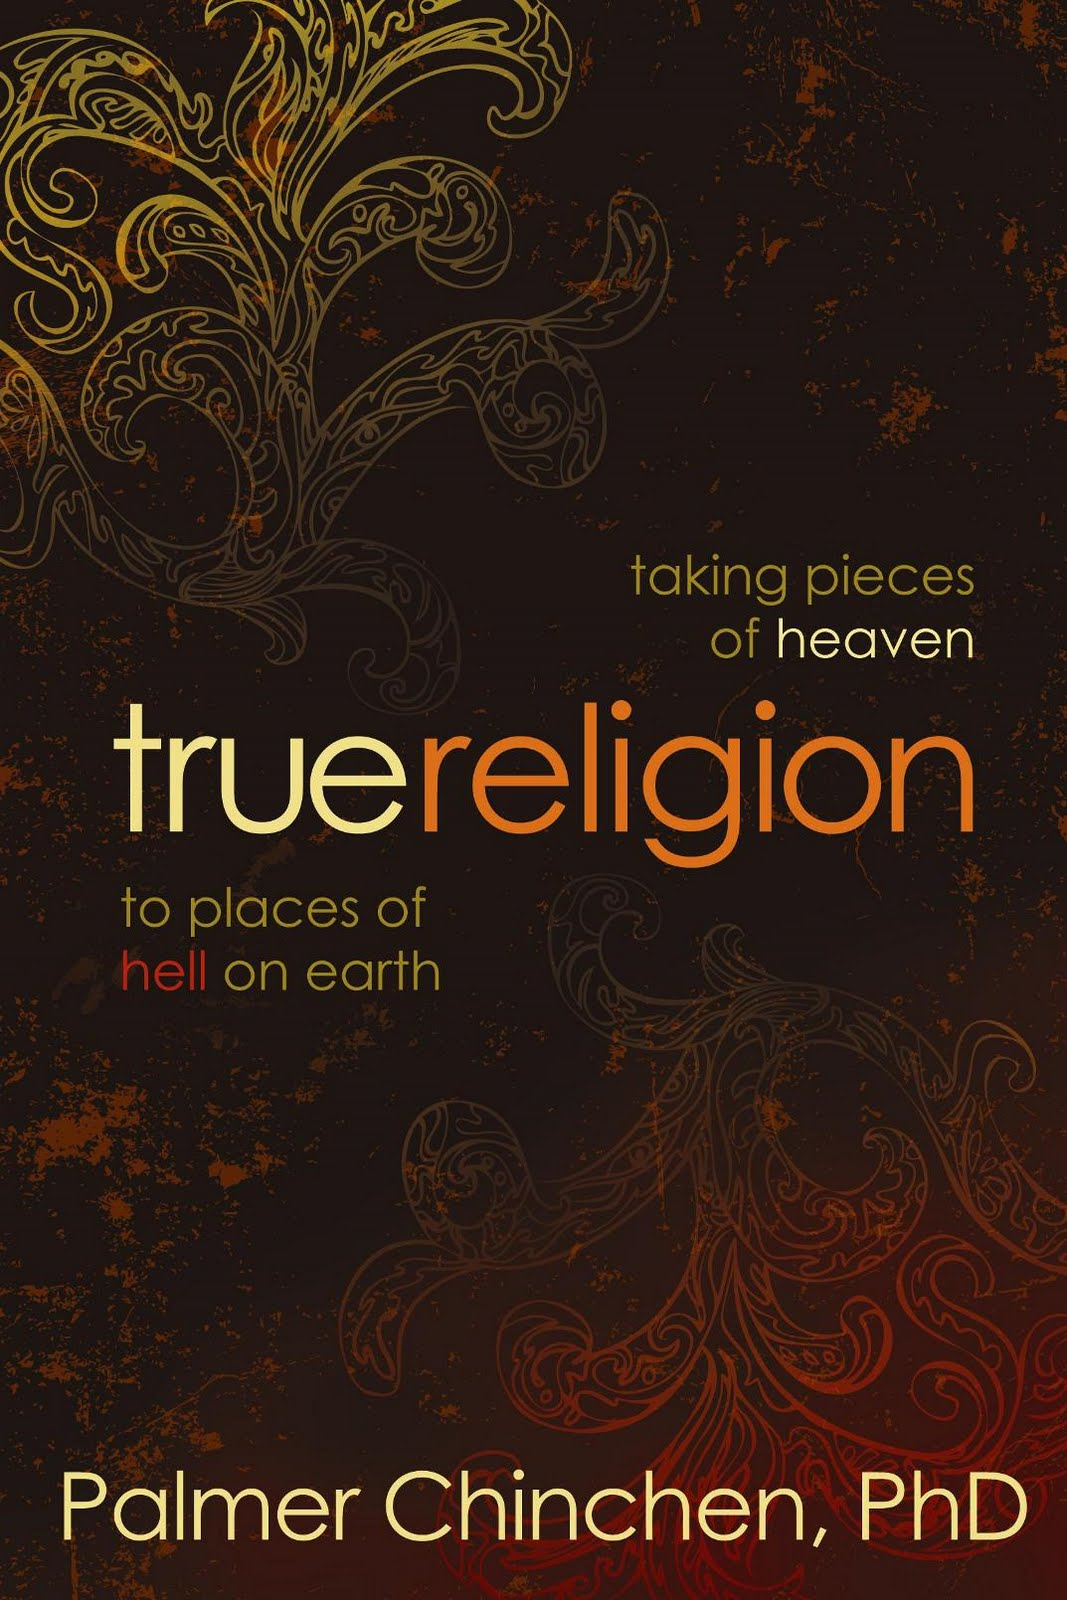 A Peek At My Bookshelf: True Religion by Palmer Chinchen